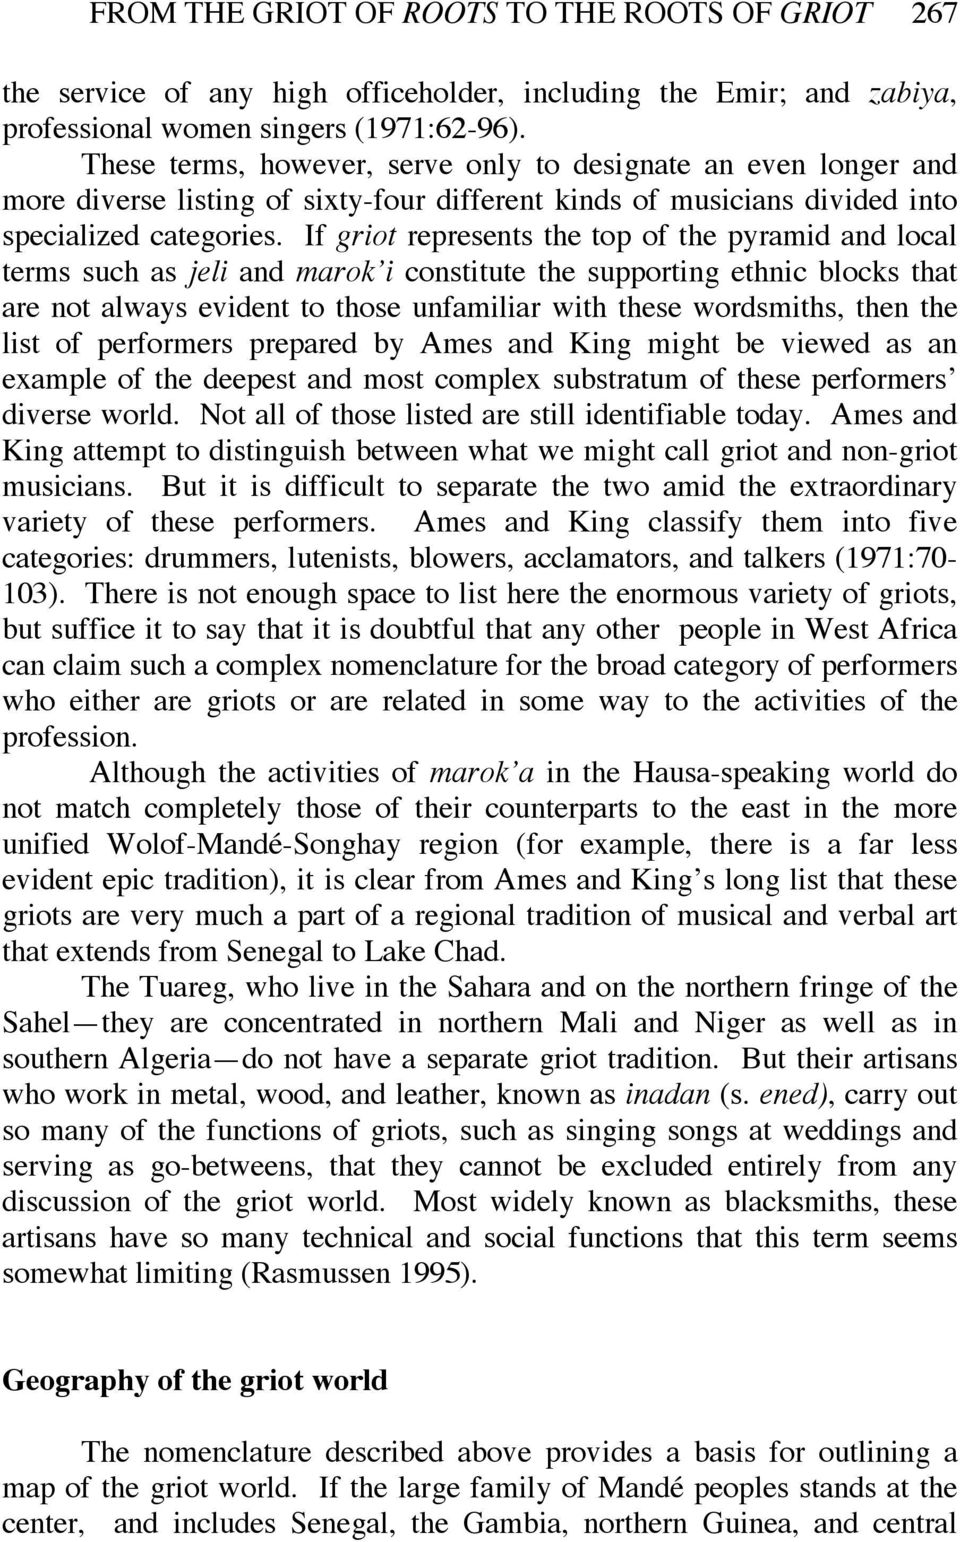 If griot represents the top of the pyramid and local terms such as jeli and marok i constitute the supporting ethnic blocks that are not always evident to those unfamiliar with these wordsmiths, then